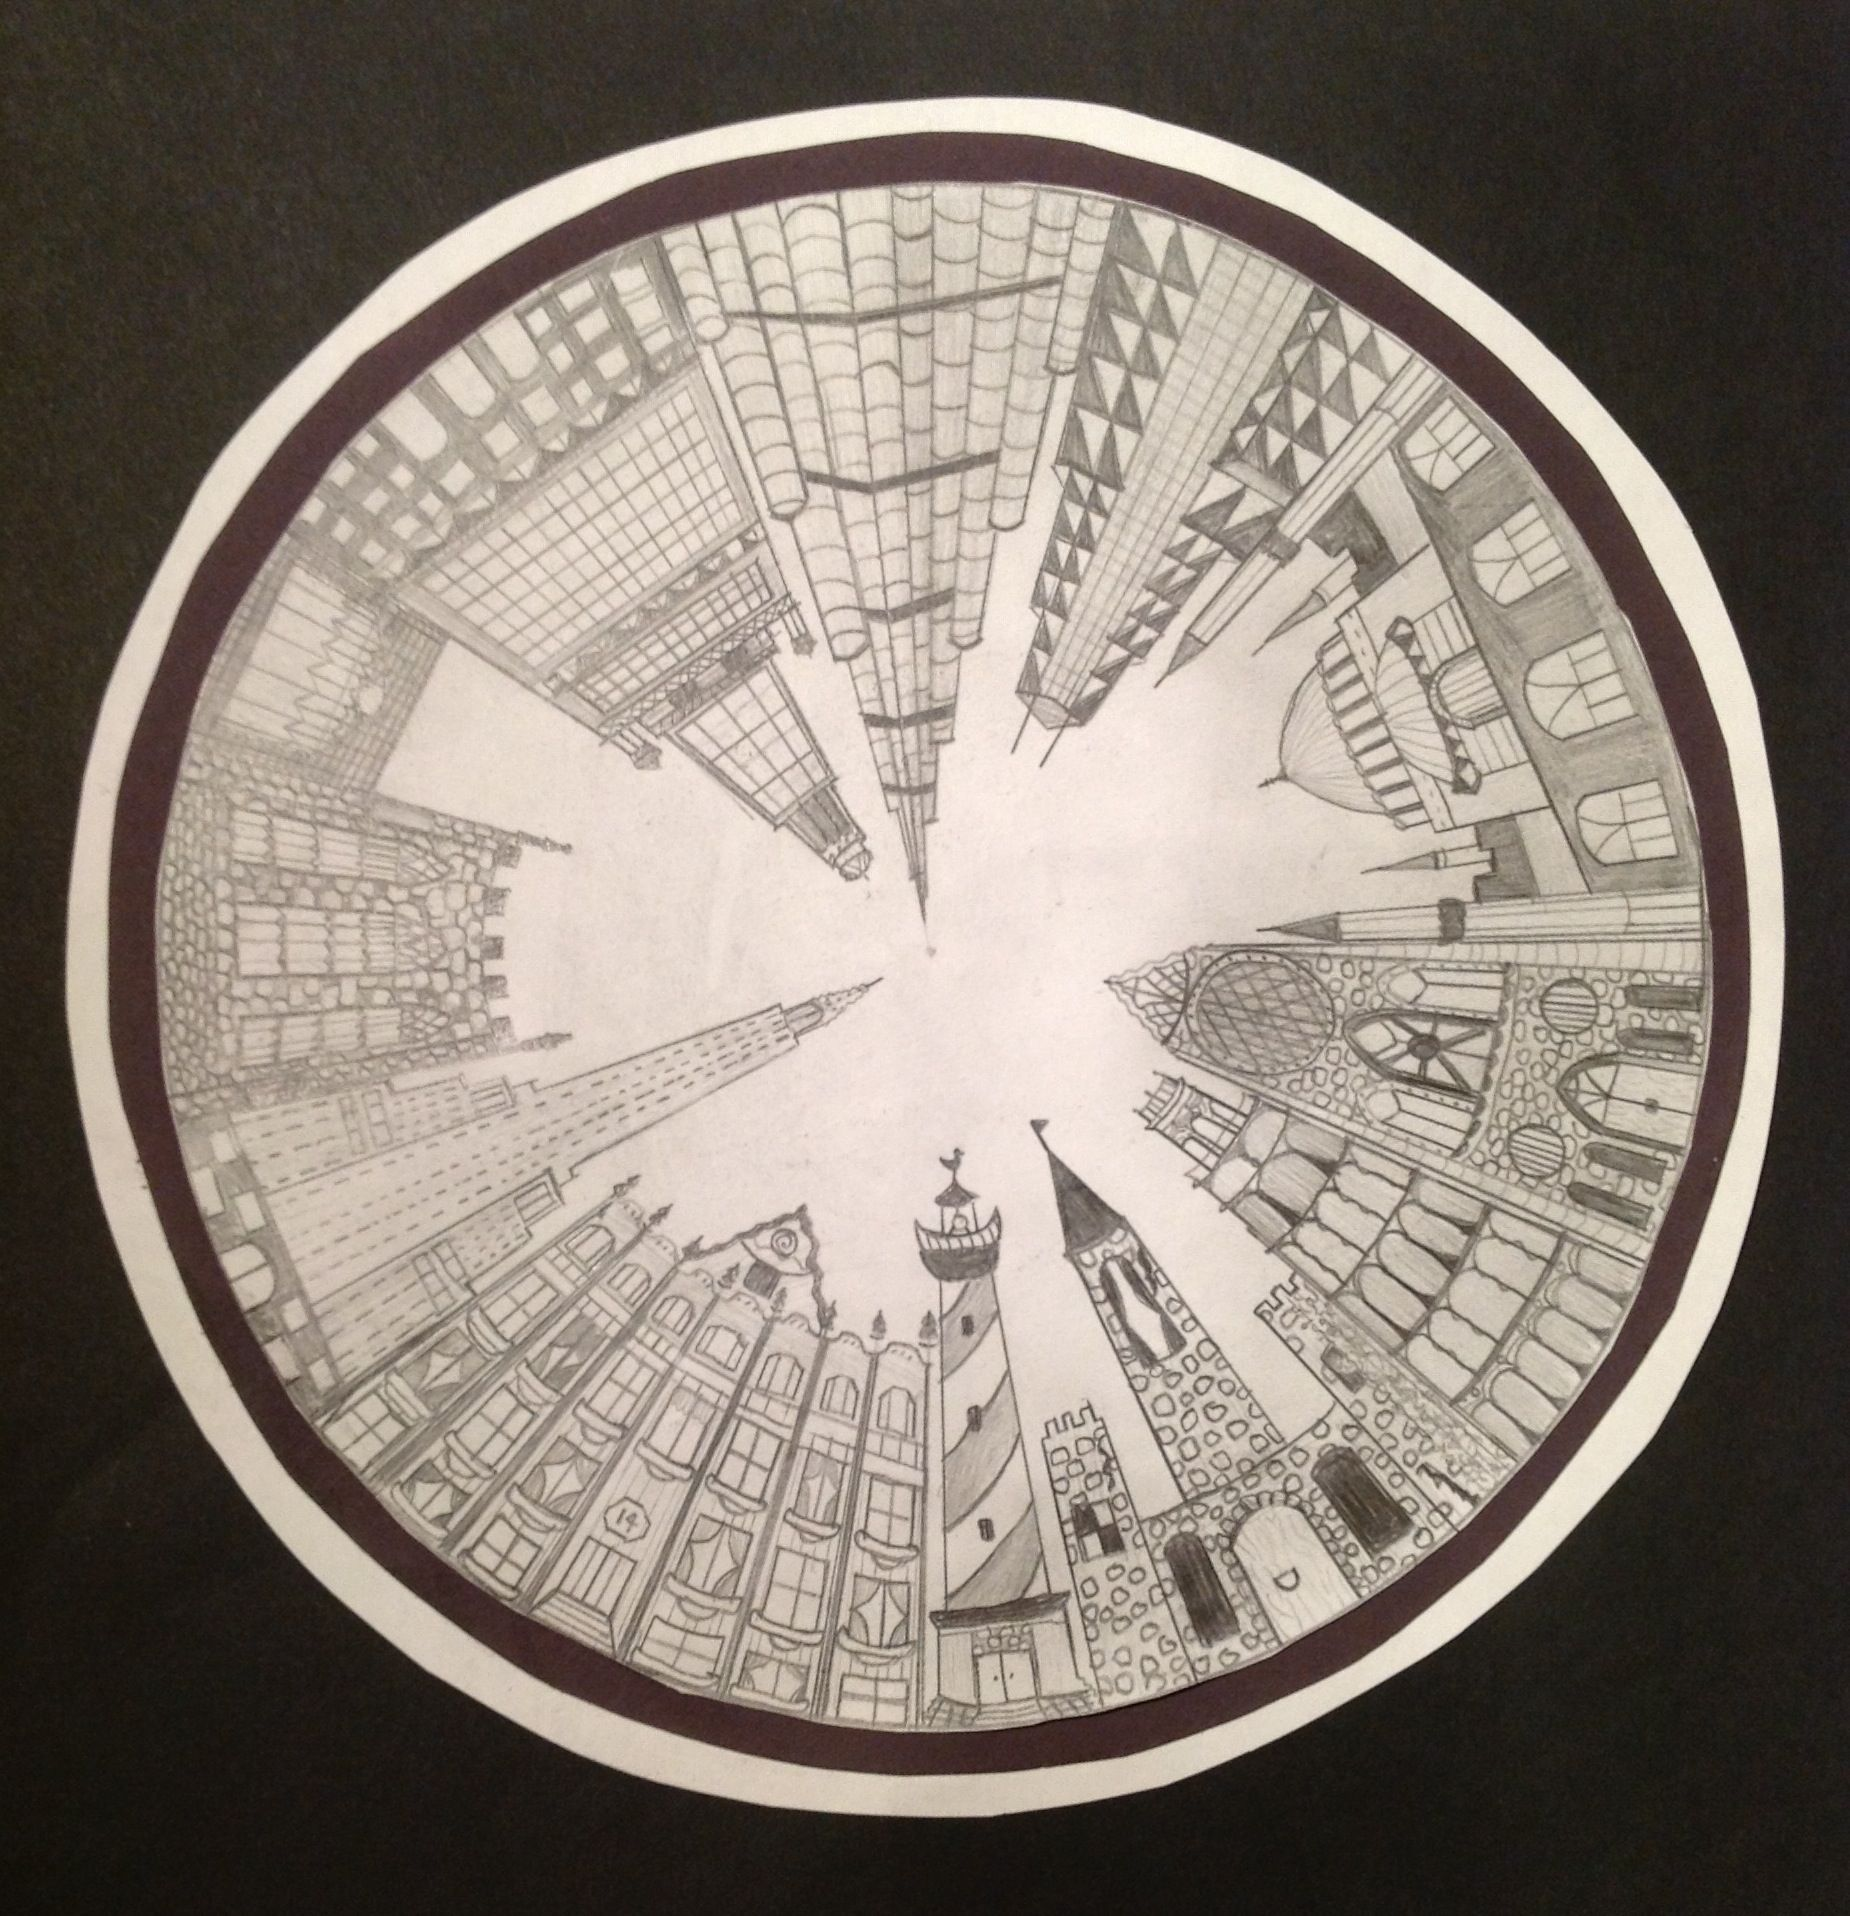 The Smartteacher Resource 1 Point Perspective City Could